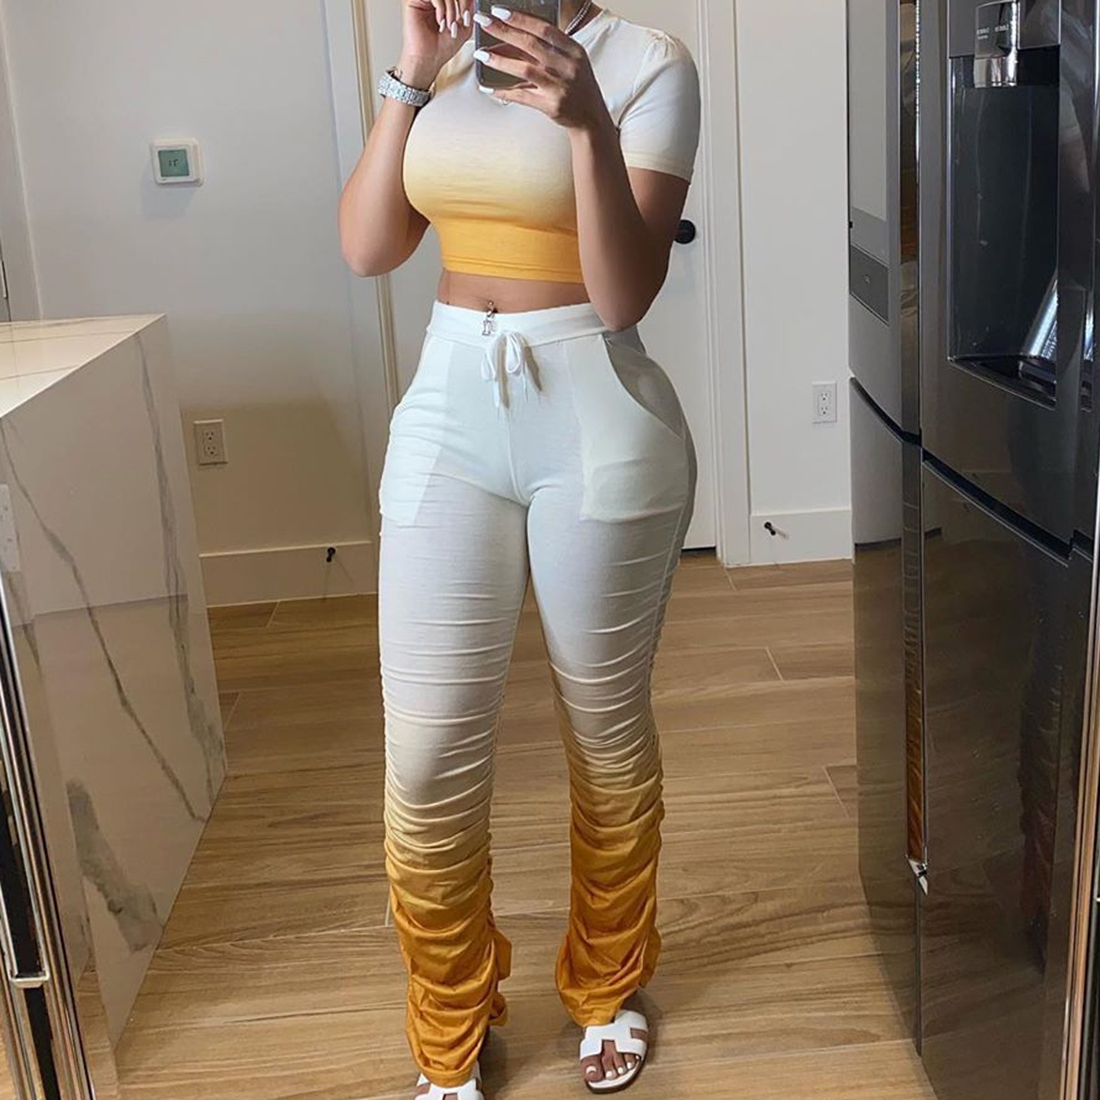 Jodimitty Women Tracksuits Two Pieces Set Gradient Short Sleeve Top Flared Pants 2 Pieces Set Pleated Pants Sports Suit Outfit 6